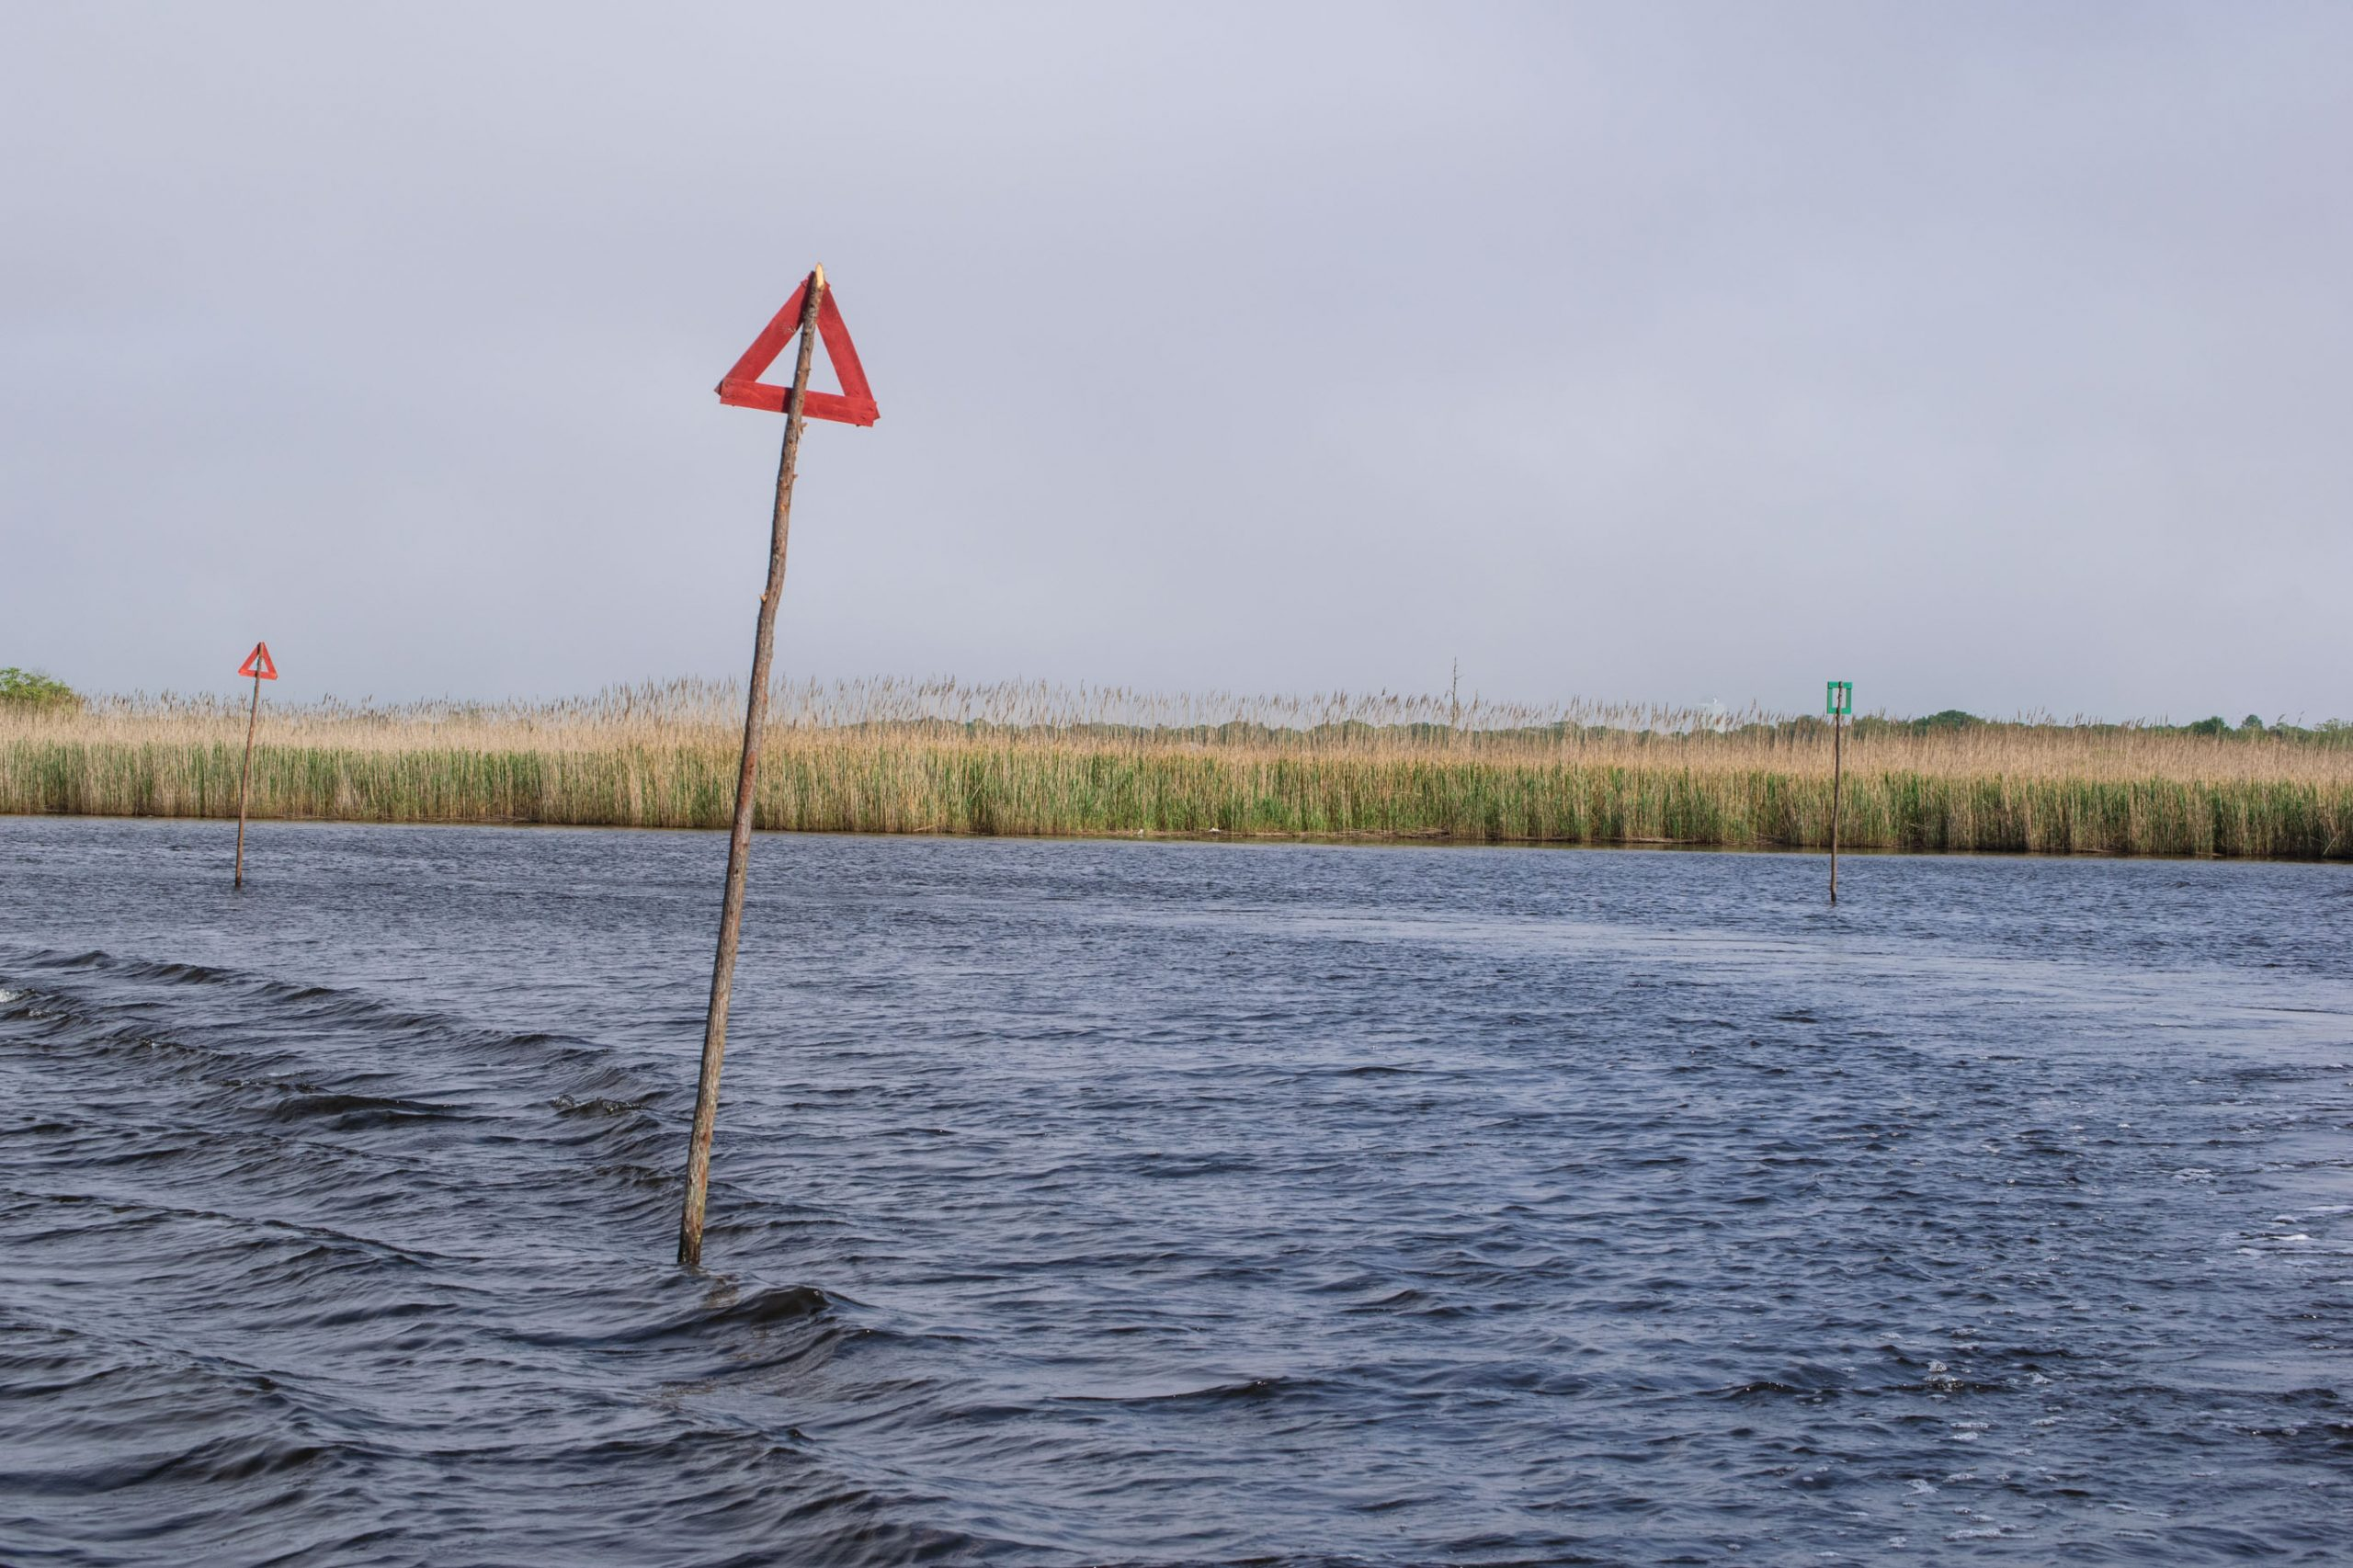 Channel markers installed along the upper Metedeconk River, May 27, 2020. (Photo: Daniel Nee)